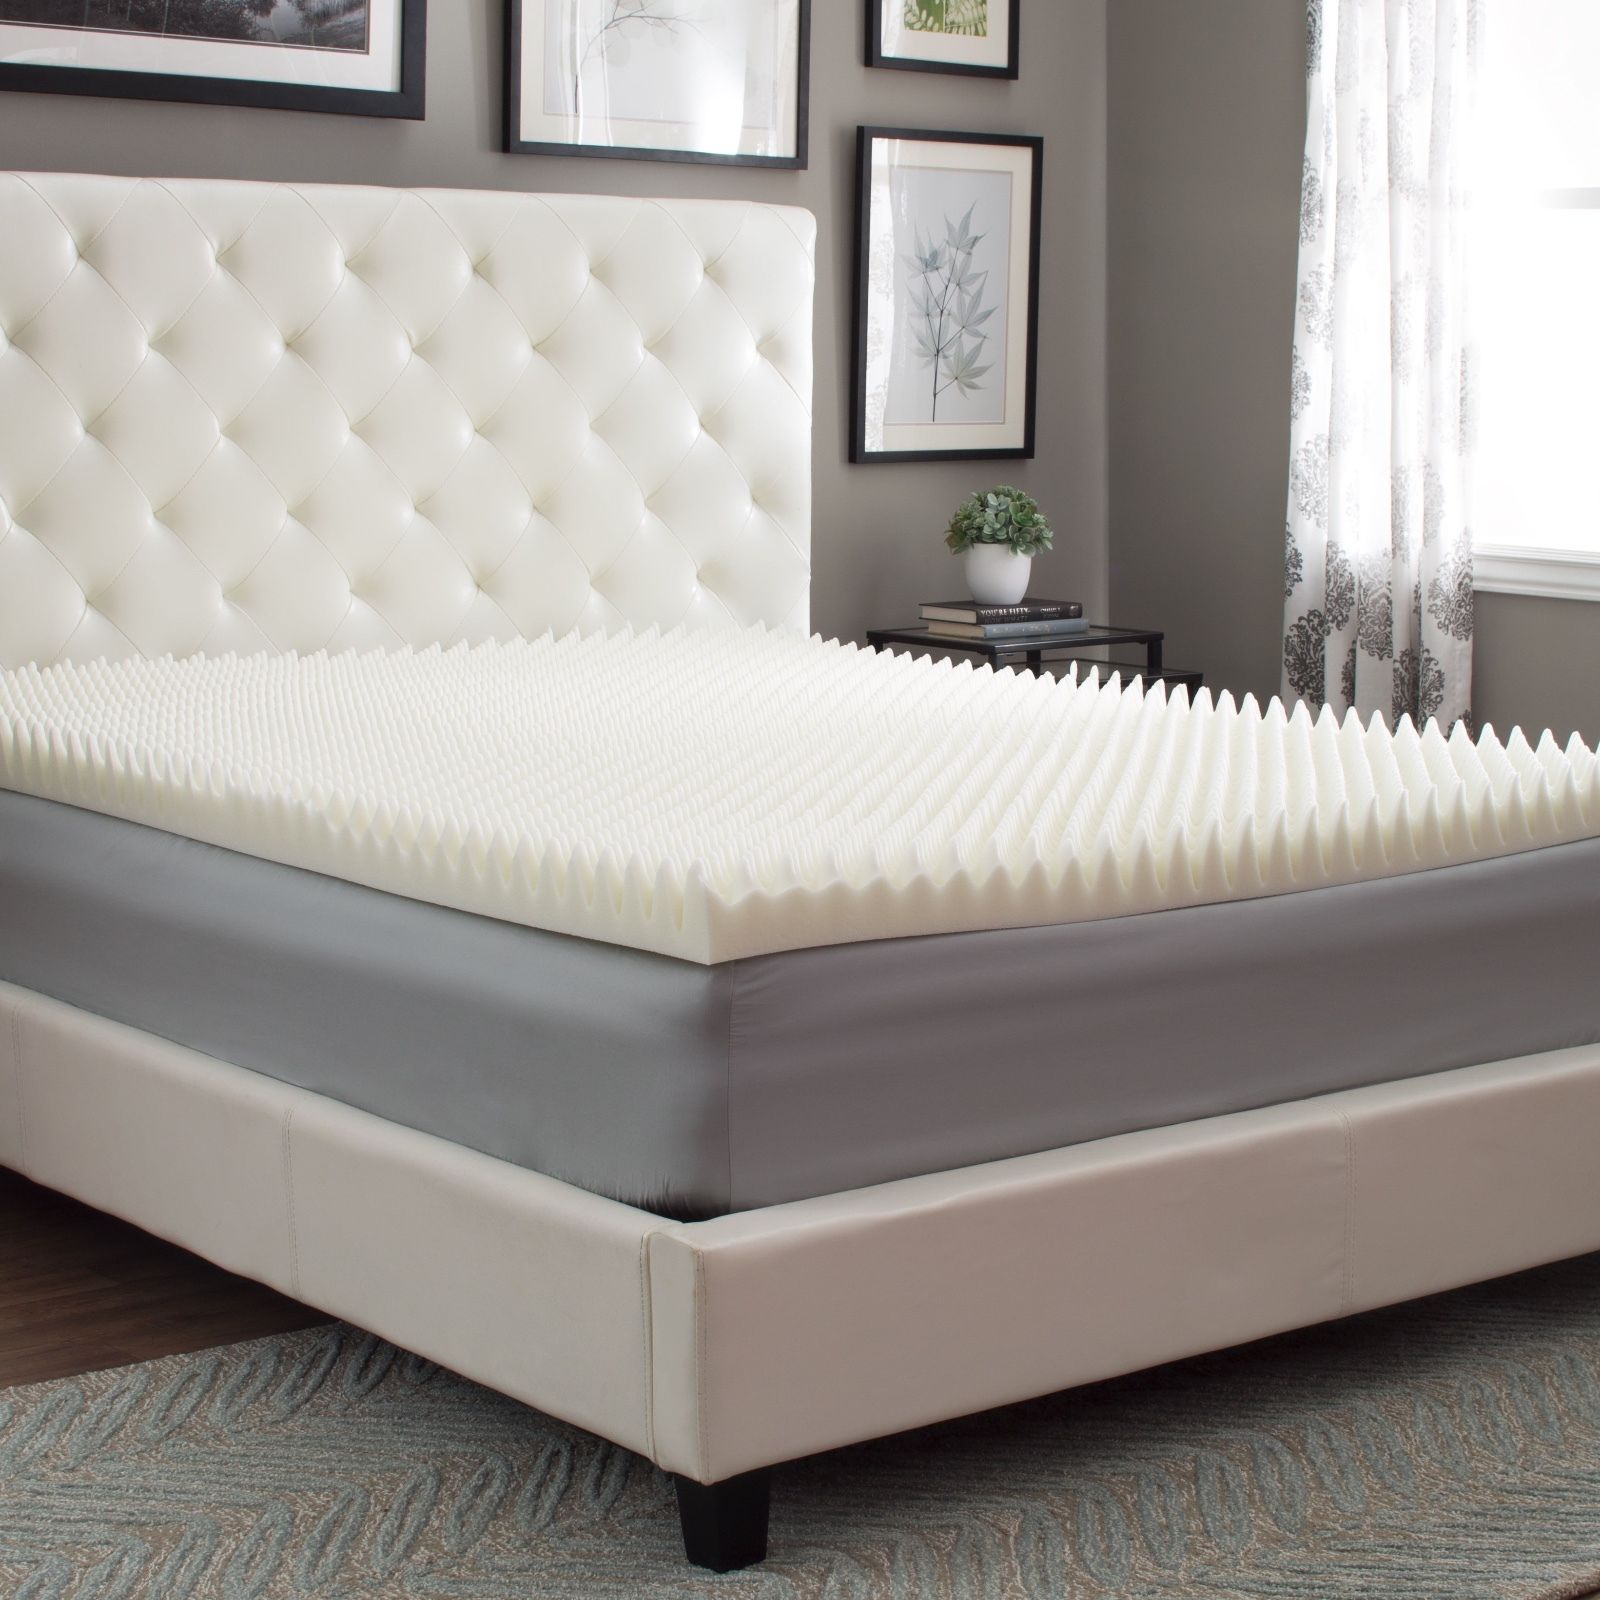 iso cool memory foam mattress pad with outlast cover review bestter choices bestter living. Black Bedroom Furniture Sets. Home Design Ideas